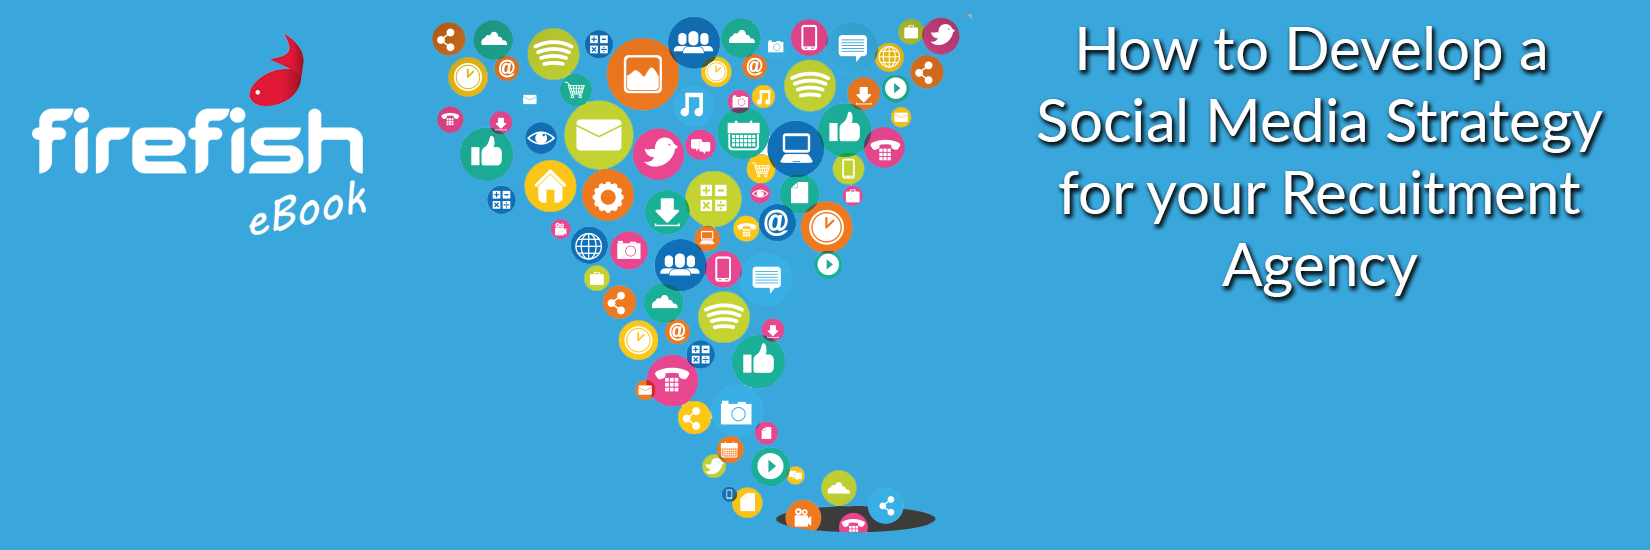 How to develop a social media strategy for your recruitment agency